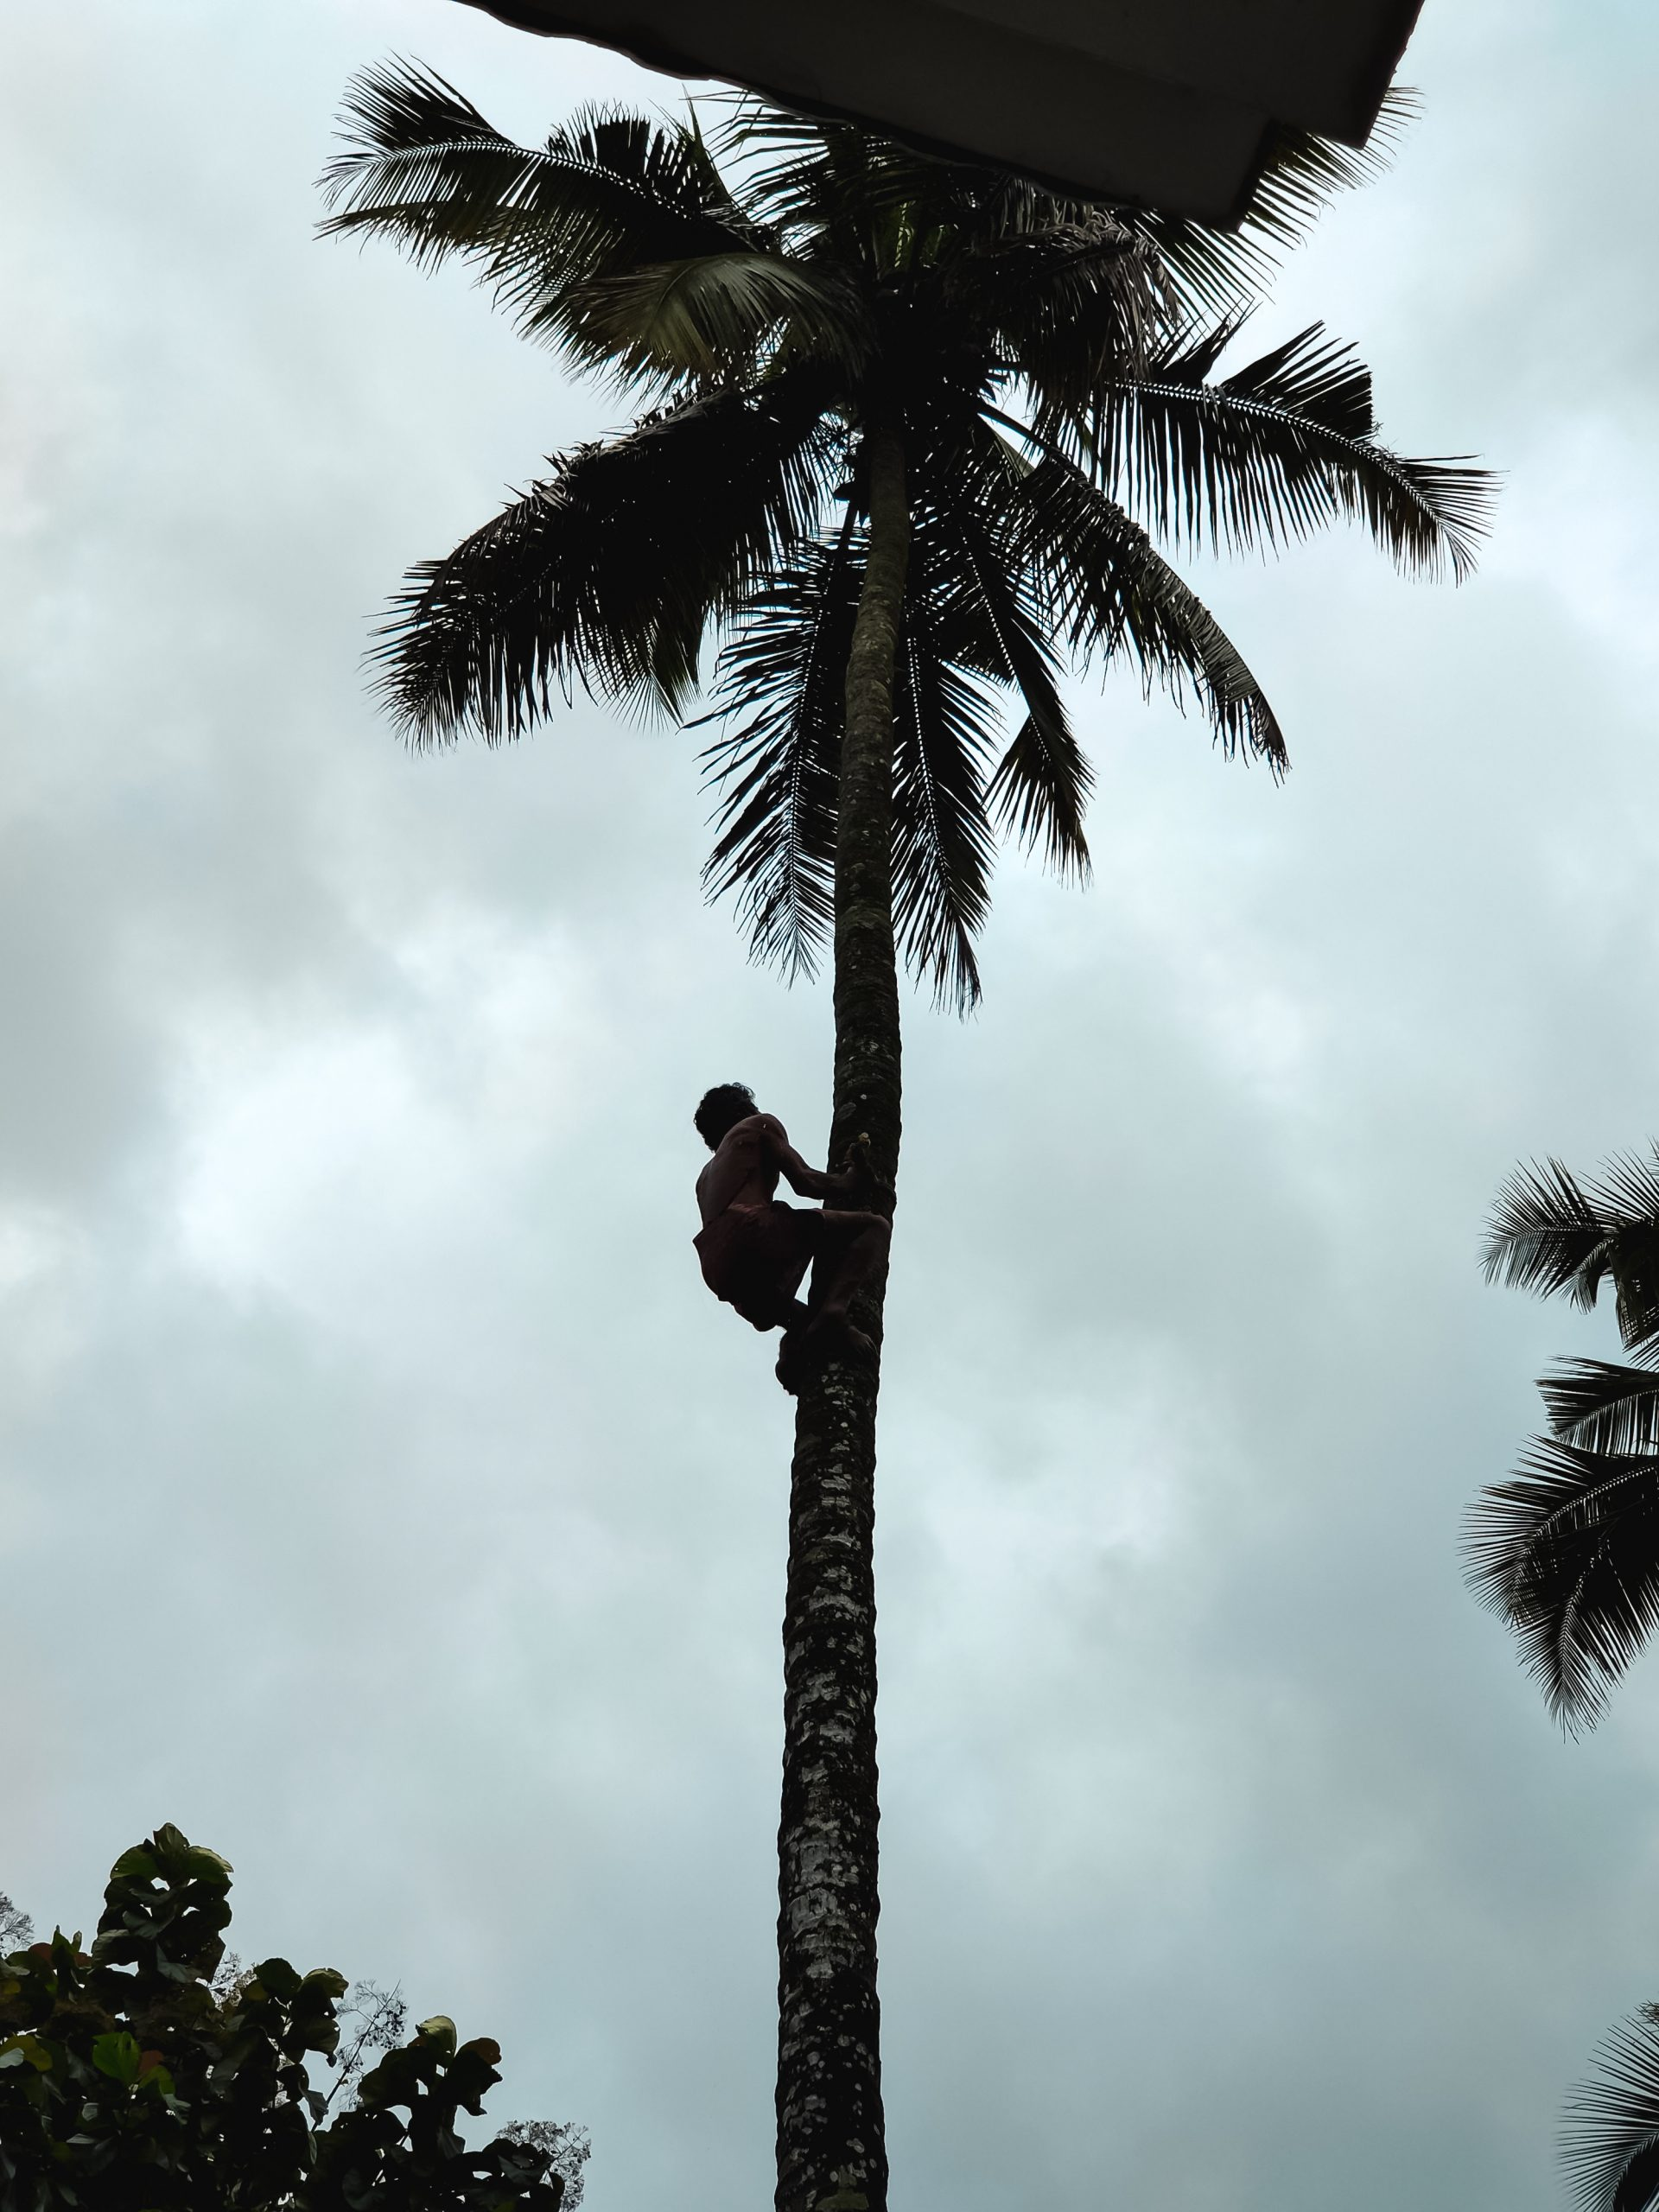 A man climbing a tree for fruits